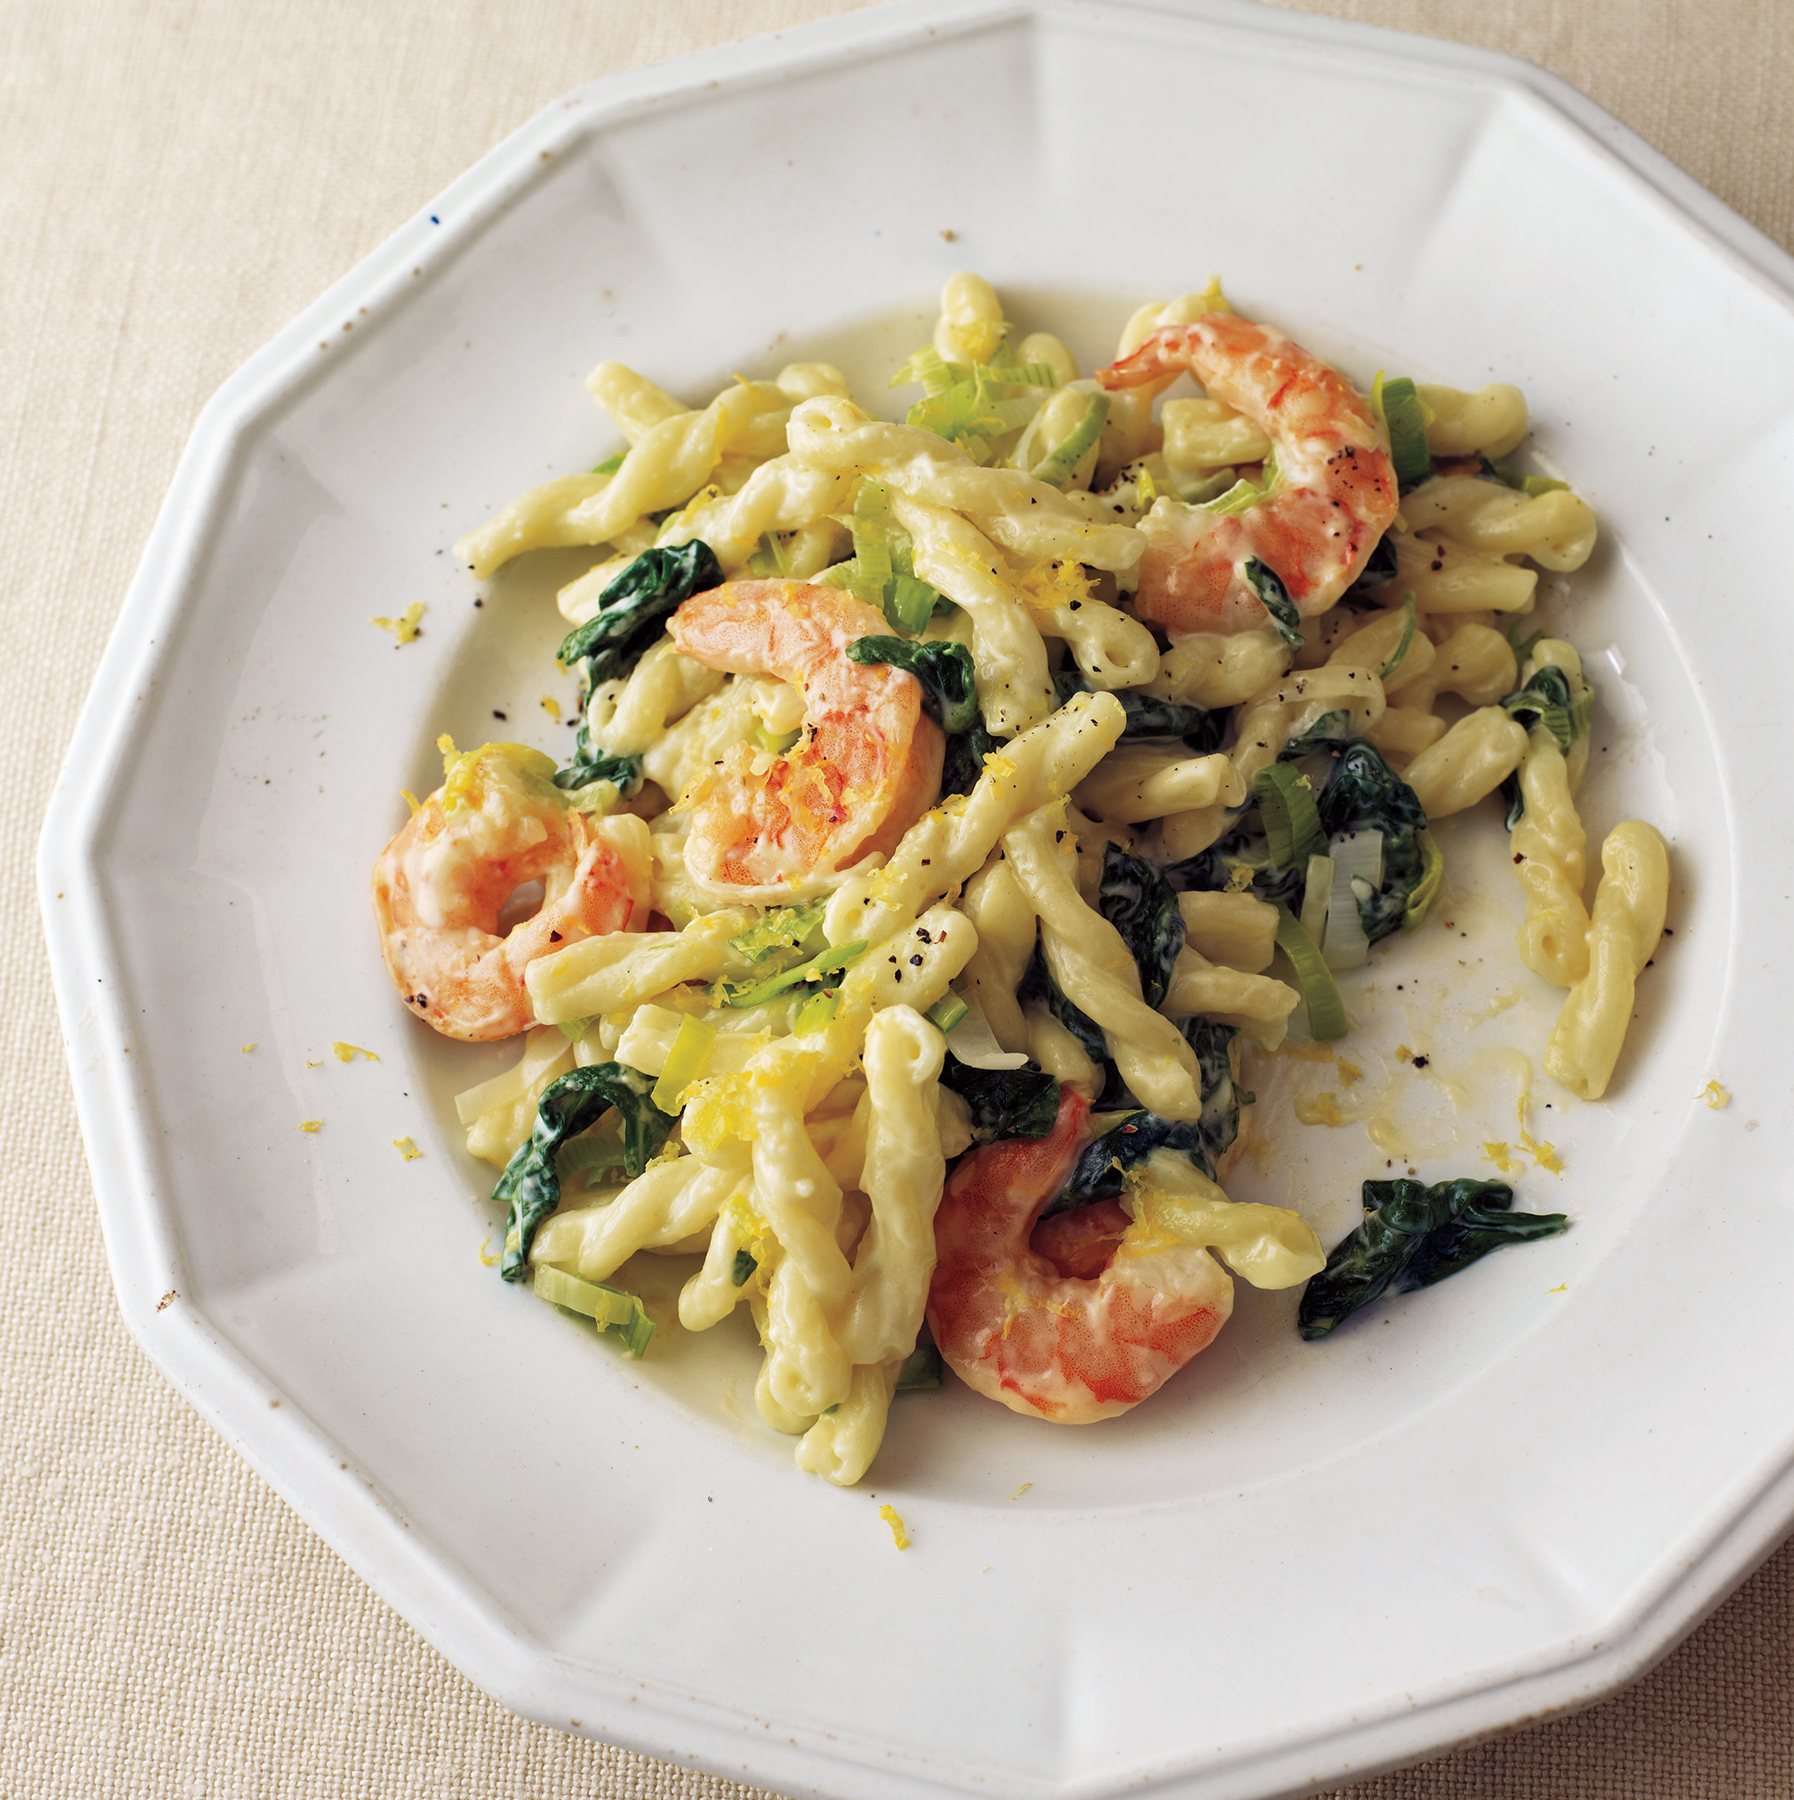 Quick Dinner Ideas: Shrimp, Leek, and Spinach Pasta